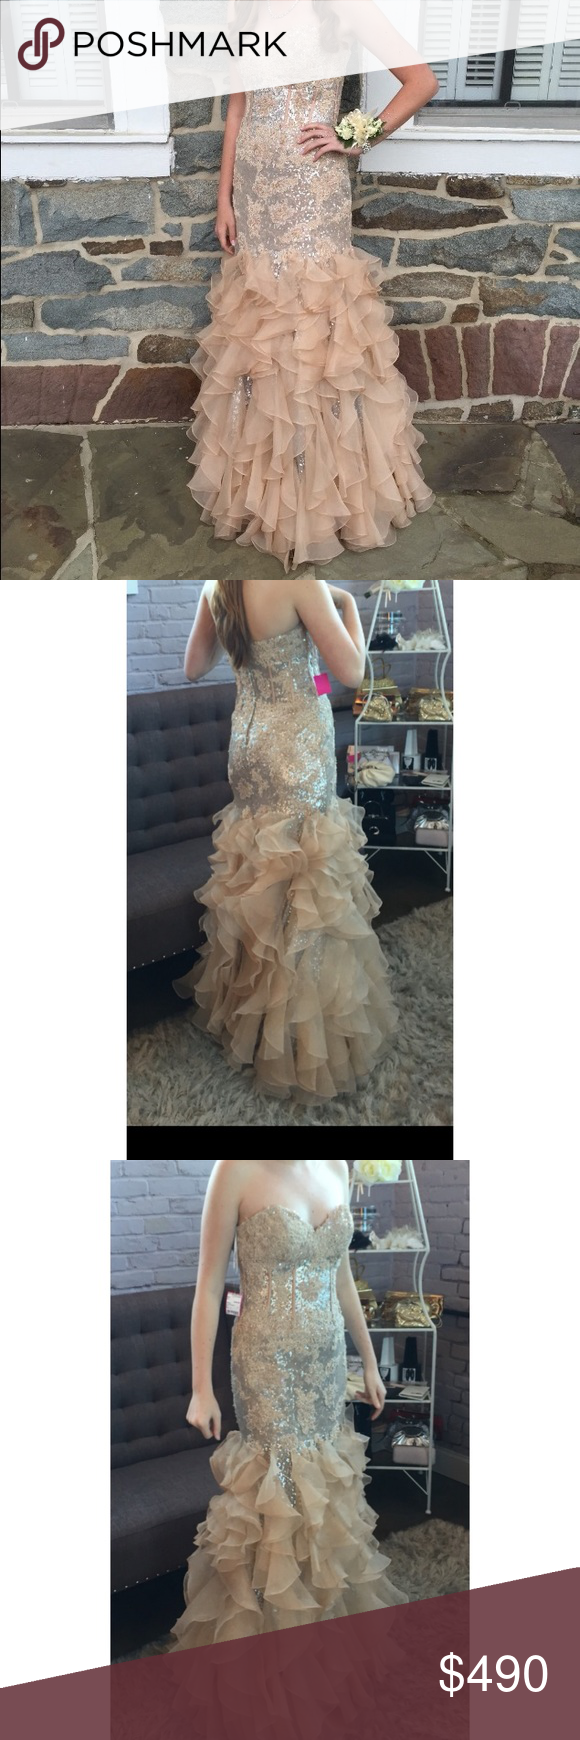 Jovani Dress!!! In great shape!! Worn once!! Size:6 also posted on other sites Jovani Dresses Prom